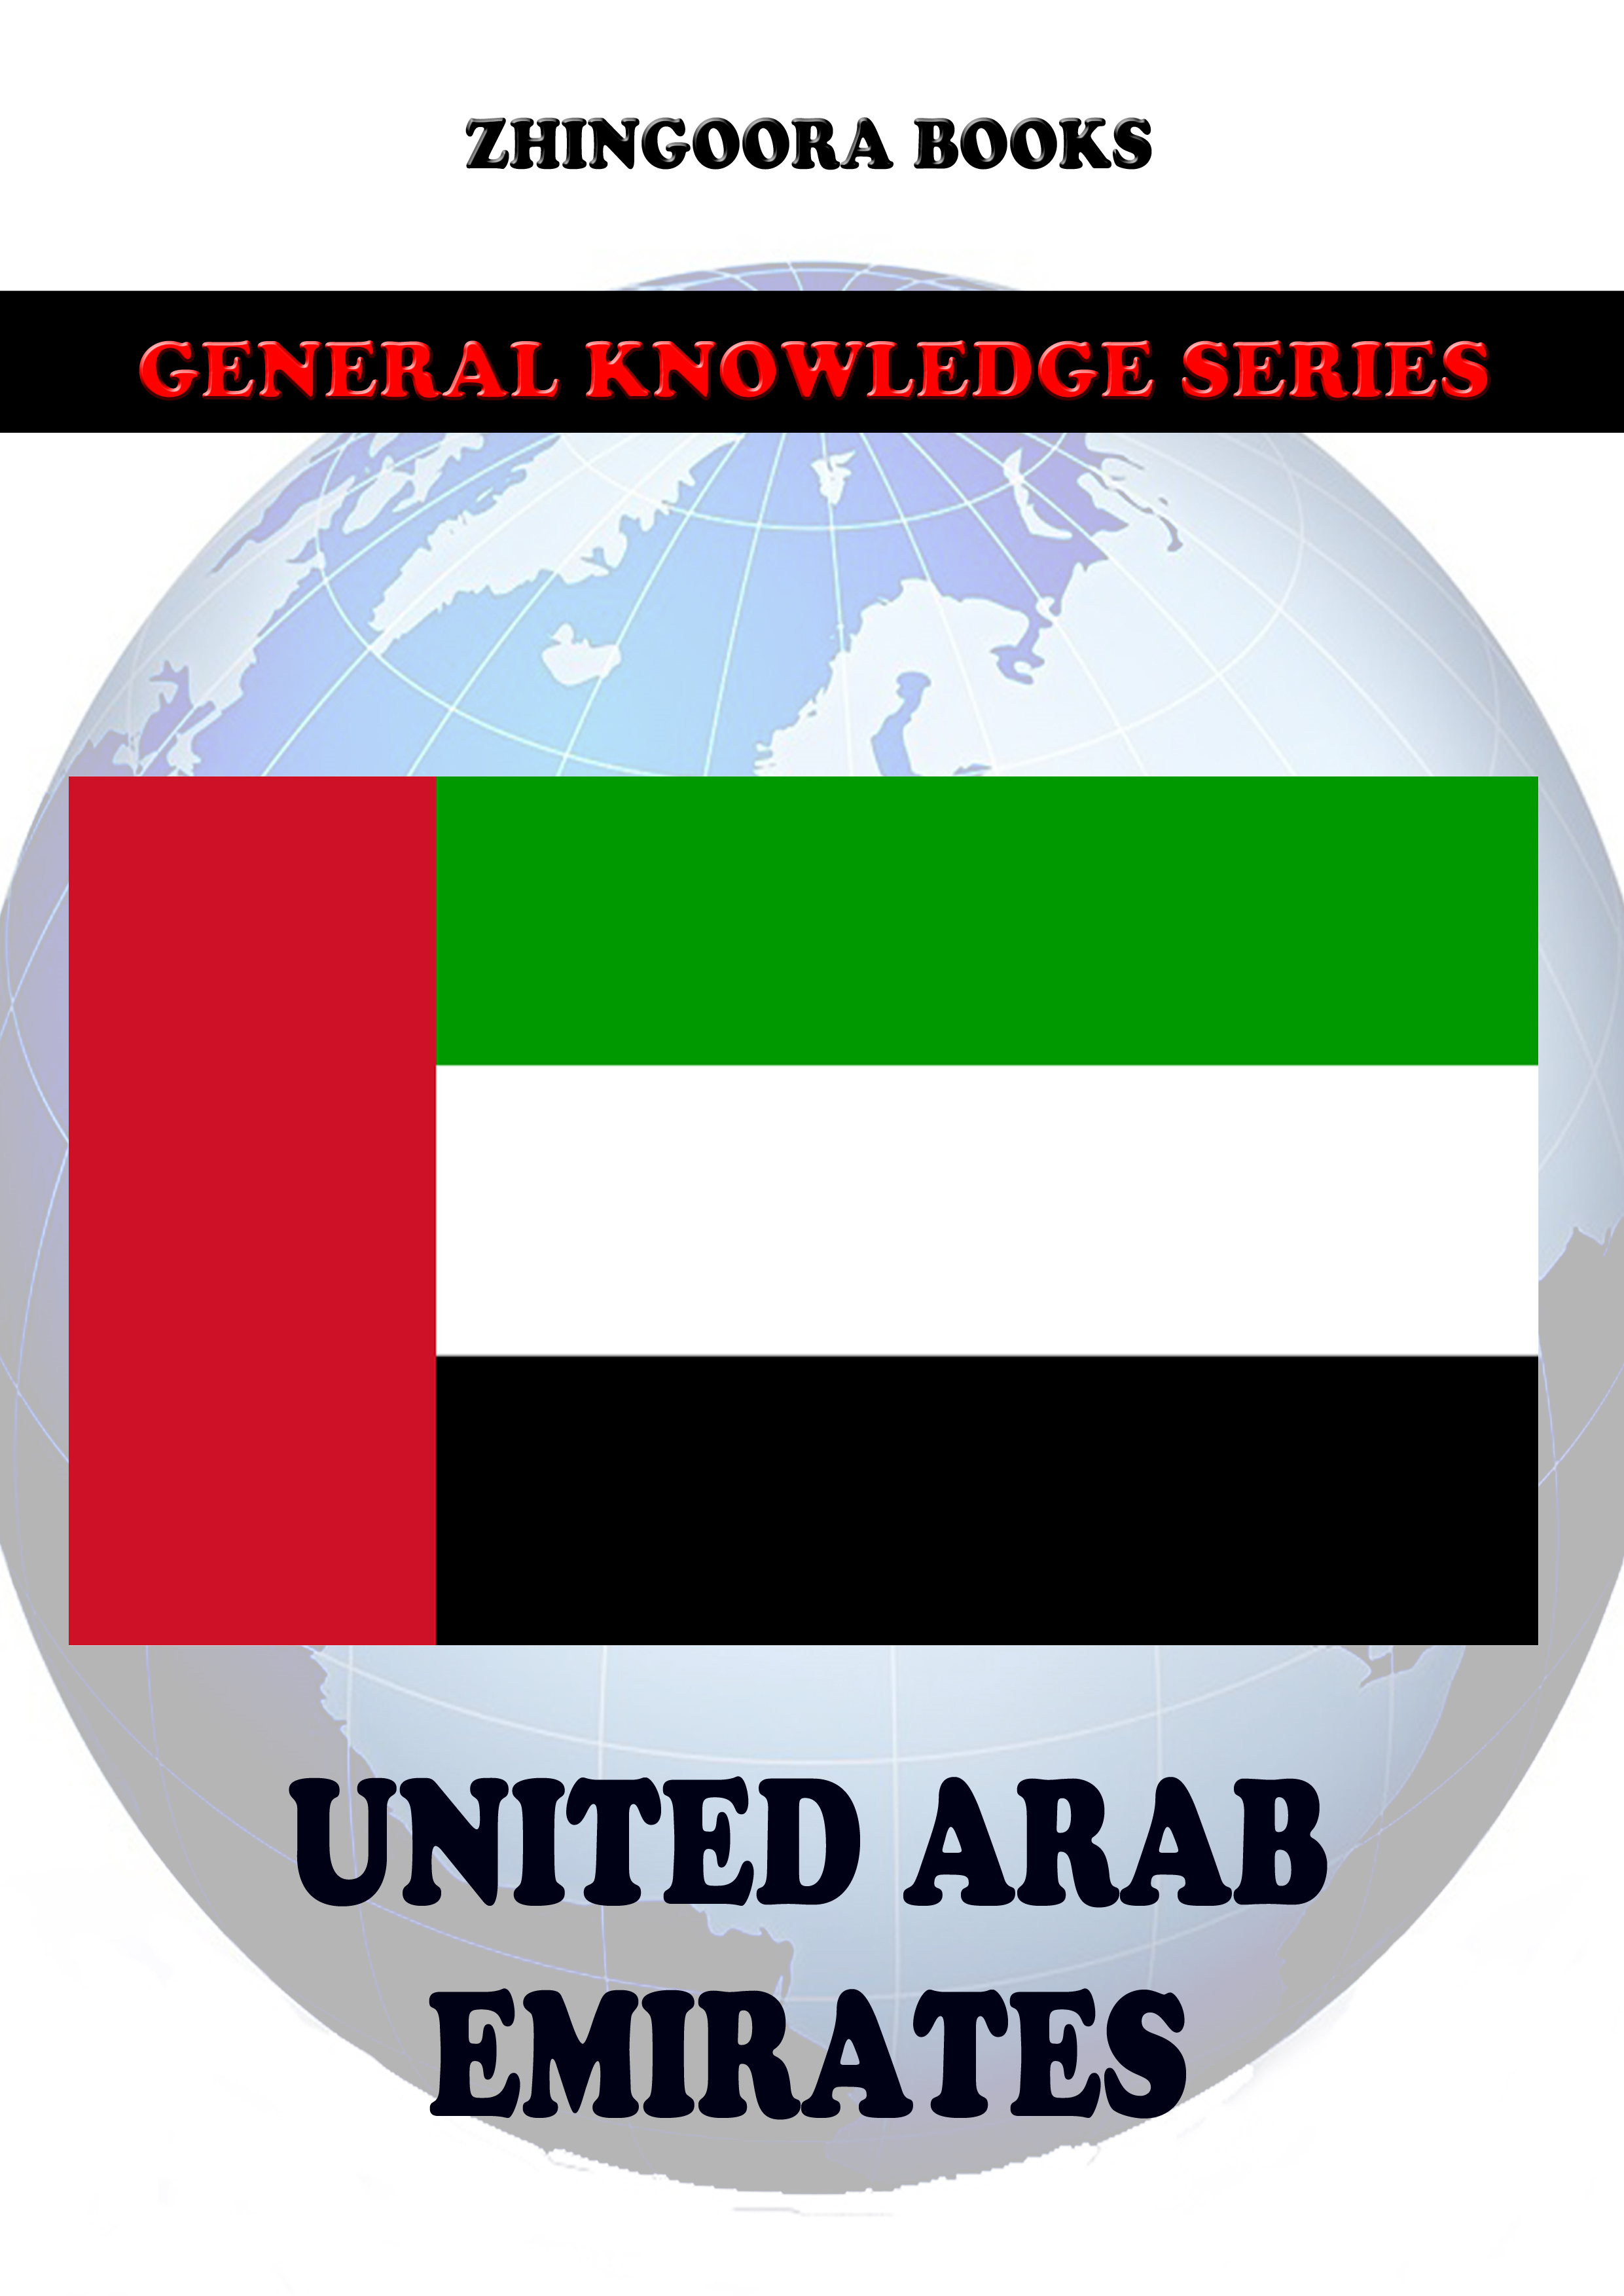 United Arab Emirates By: Zhingoora Books